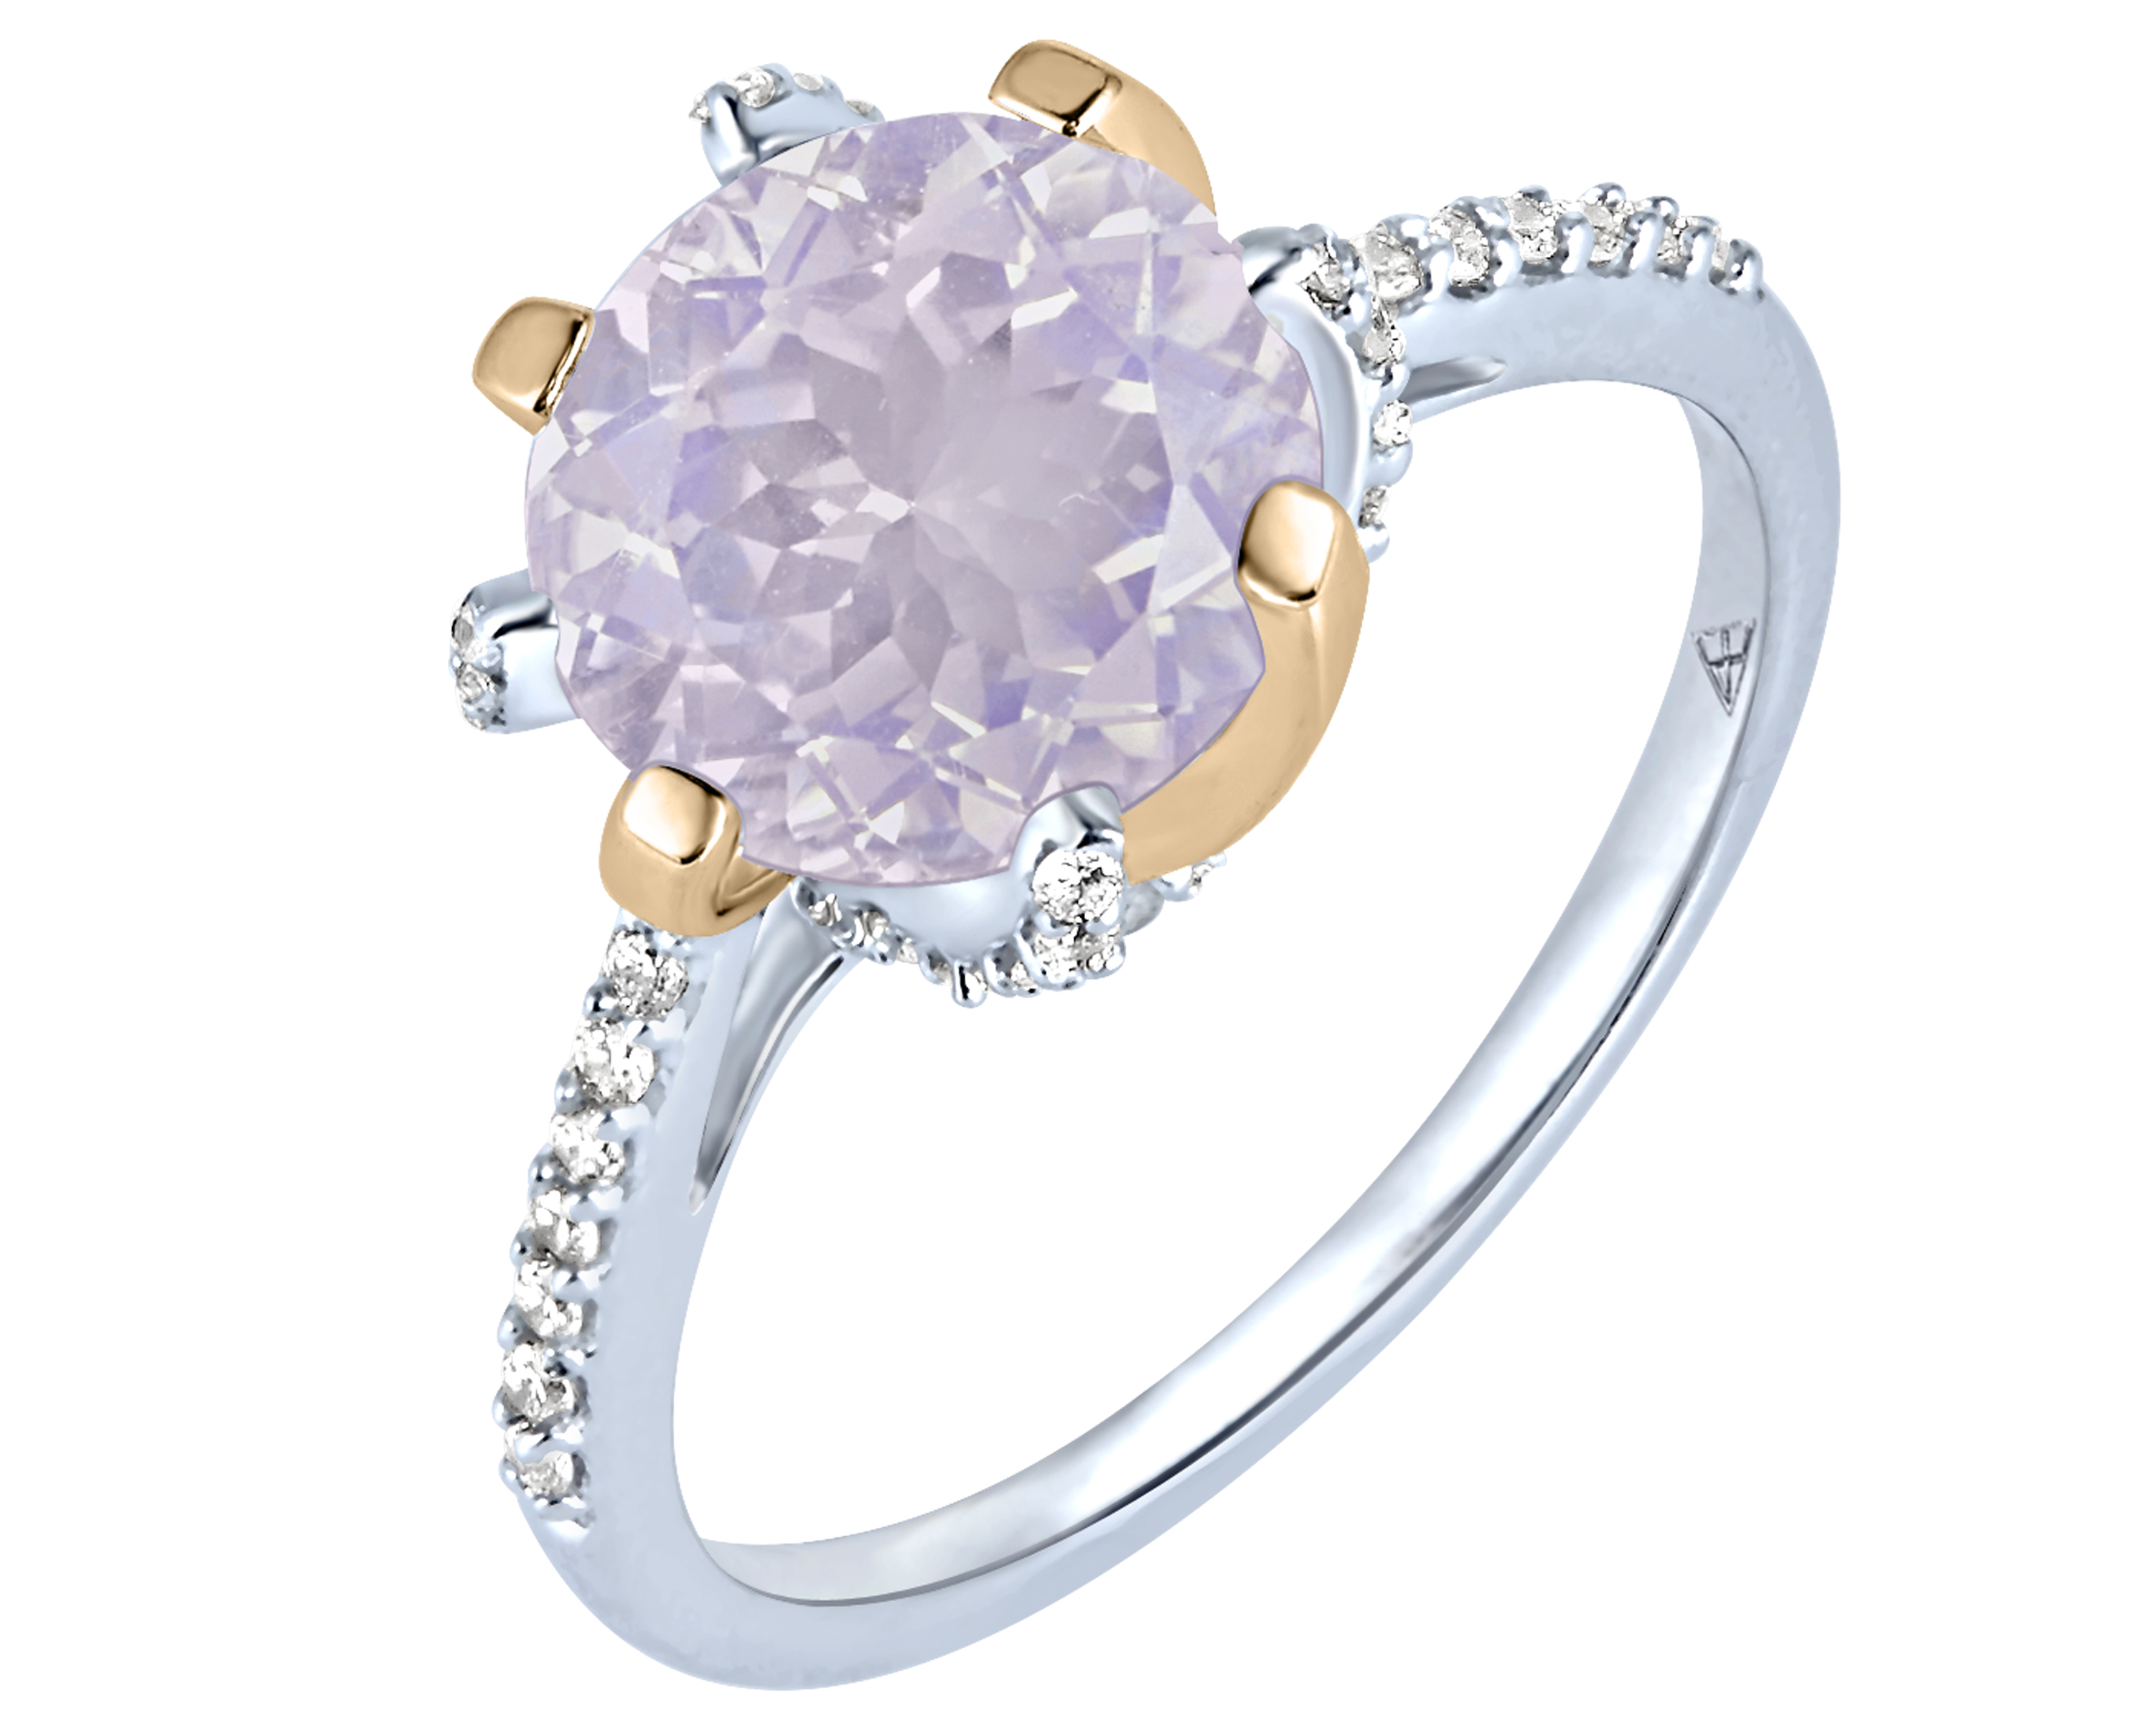 Arya Esha Galaxy collection lavender moonstone ring | JCK On Your Market